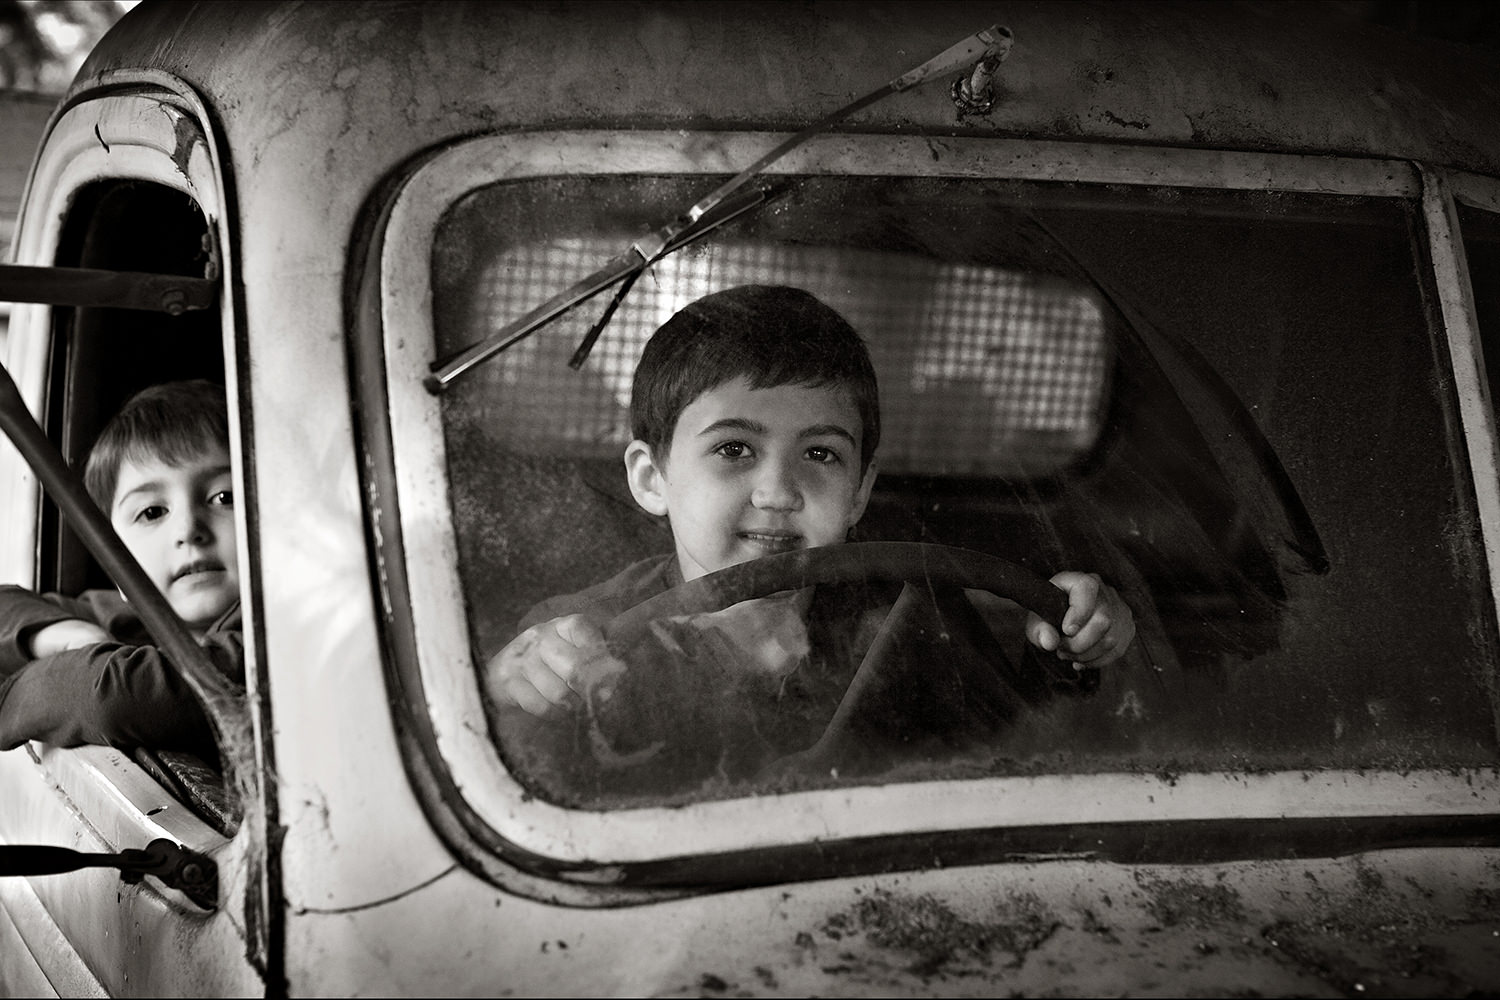 boys in truck-portrait composition-black and white portraits-